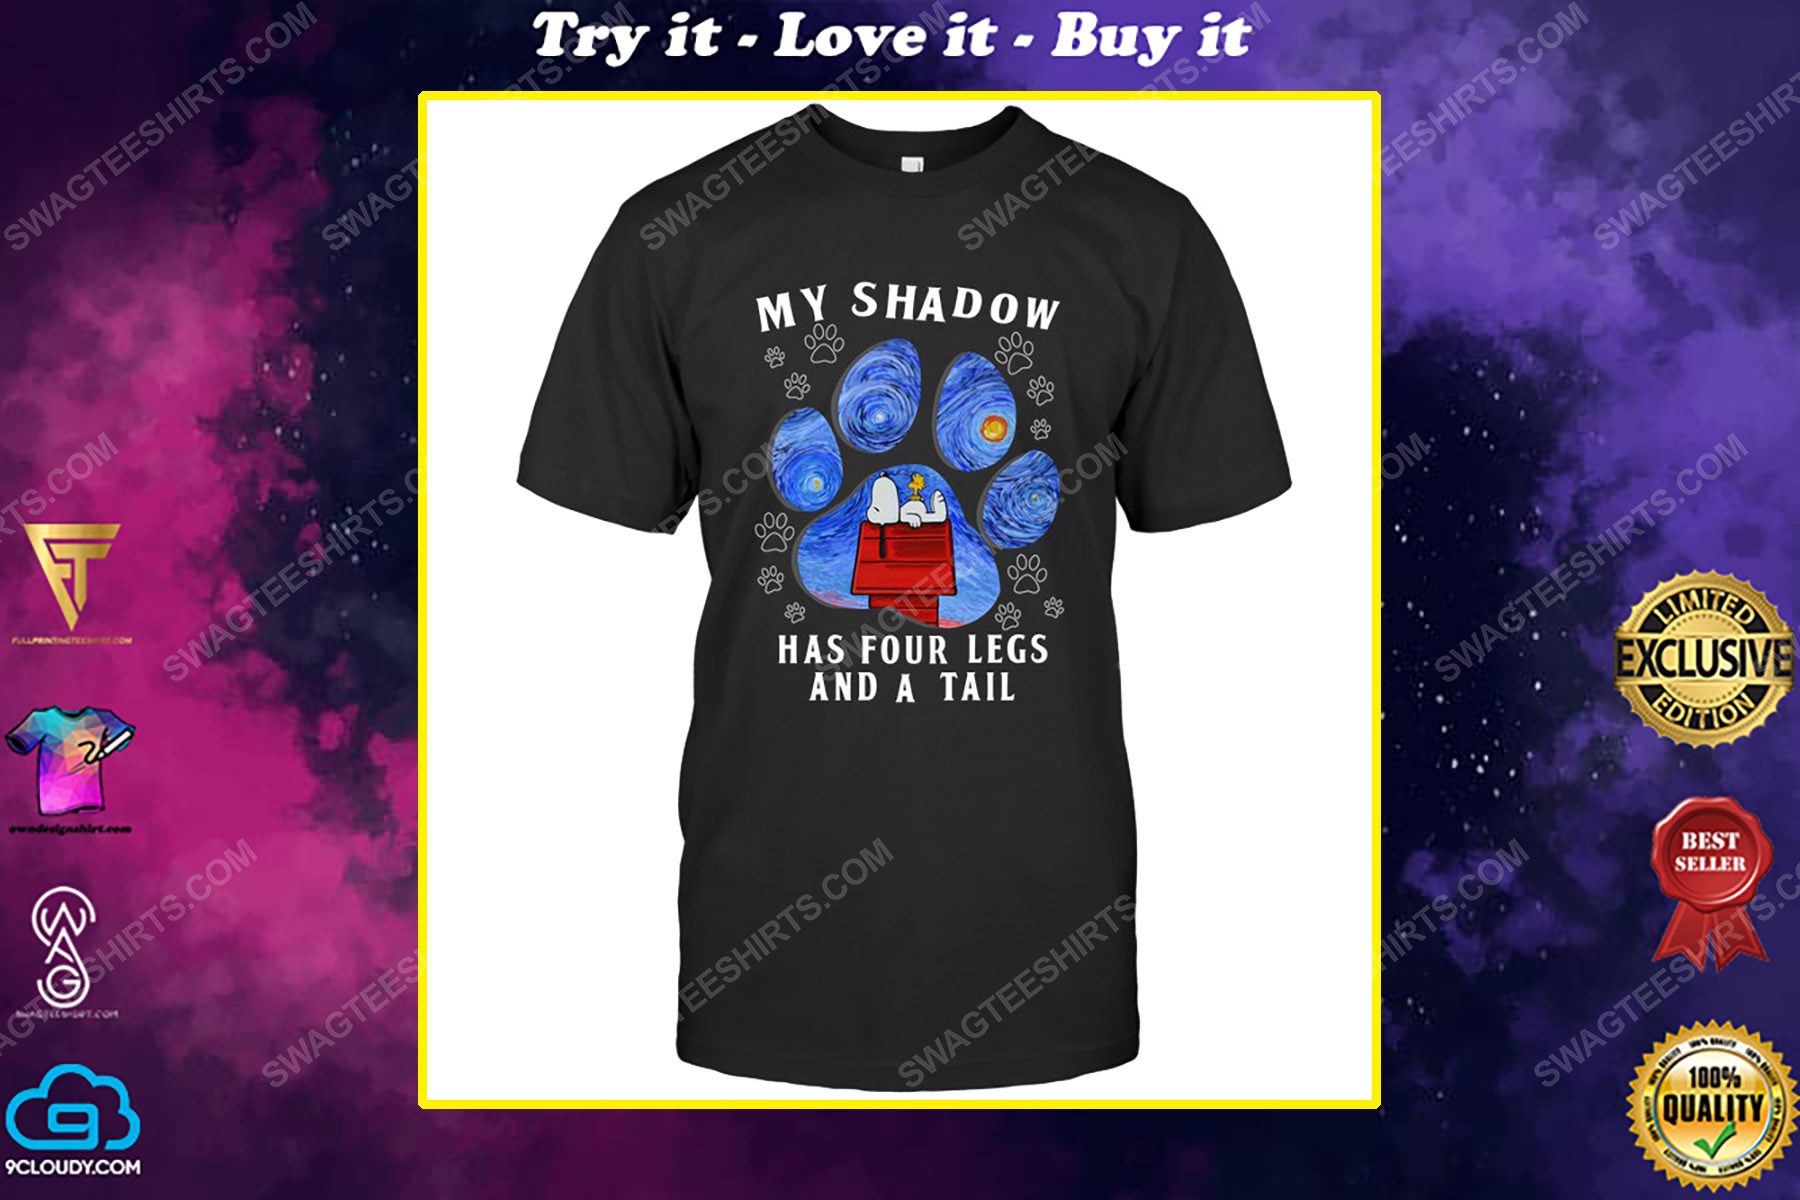 The starry night snoopy my shadow has 4 legs and a tail shirt